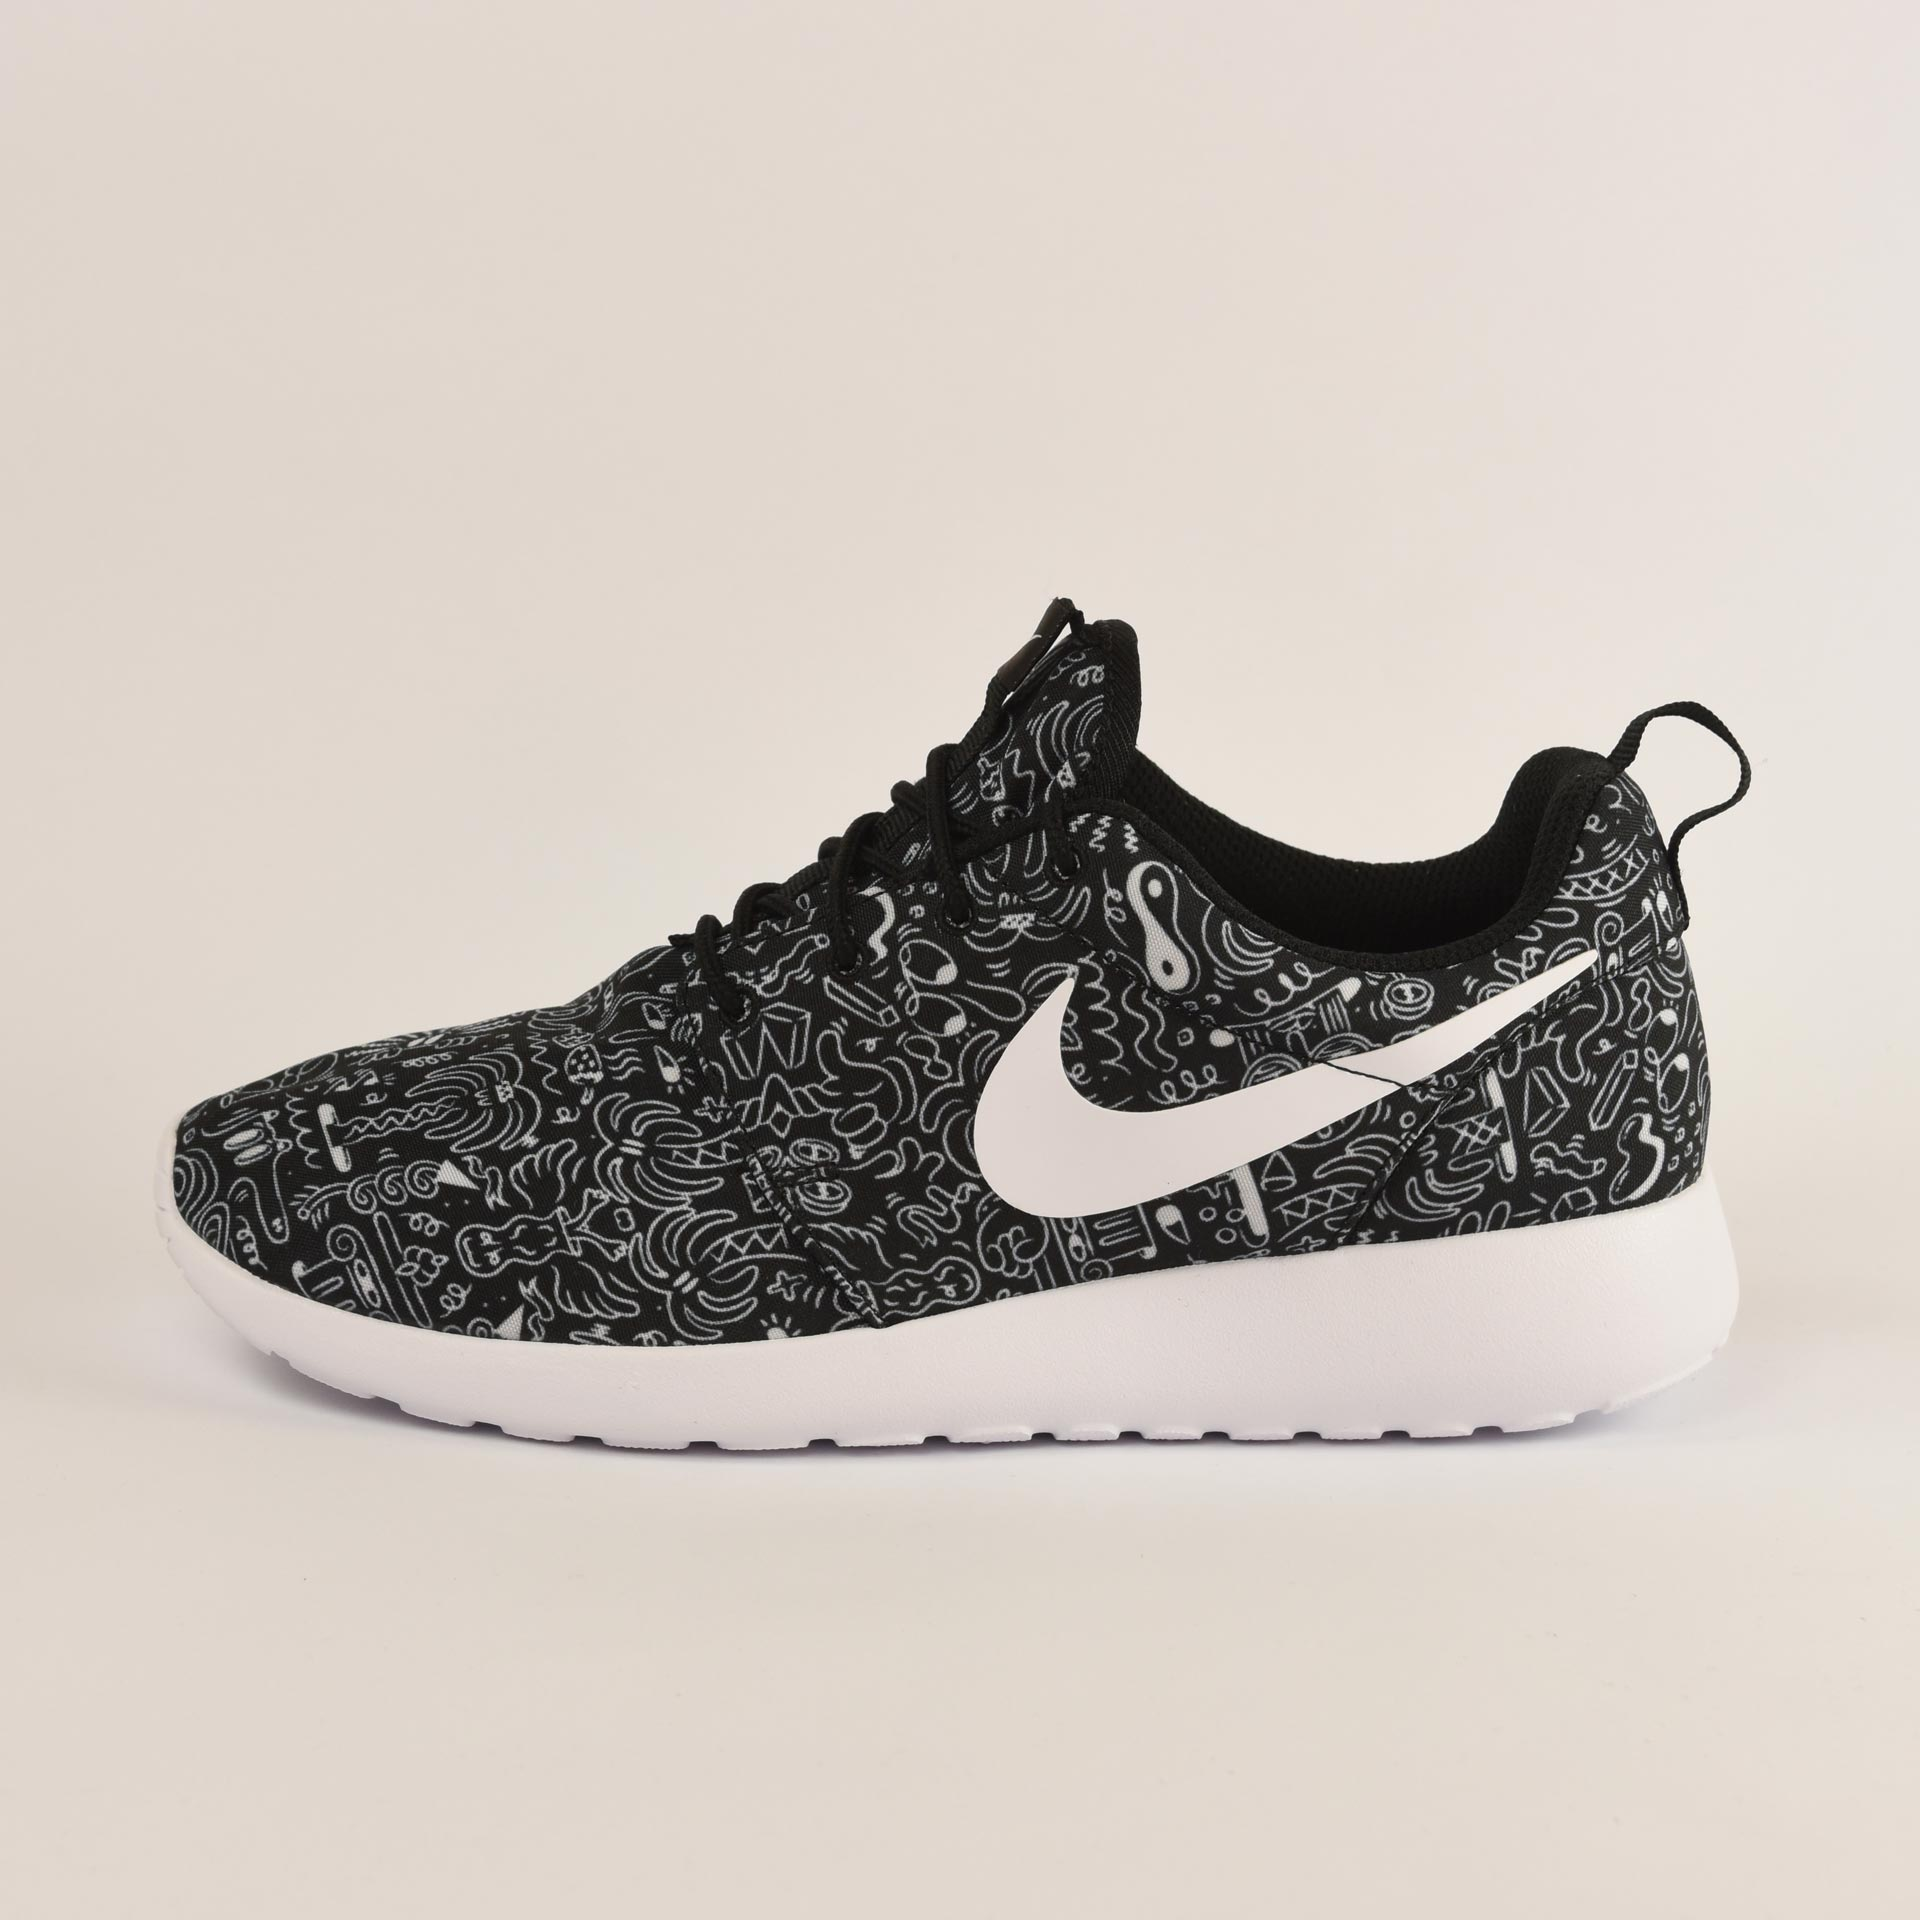 watch 957bf 9ced9 Nike WMNS NIKE ROSHE ONE PRINT PREM  NE  Zapatillas Mujer  D